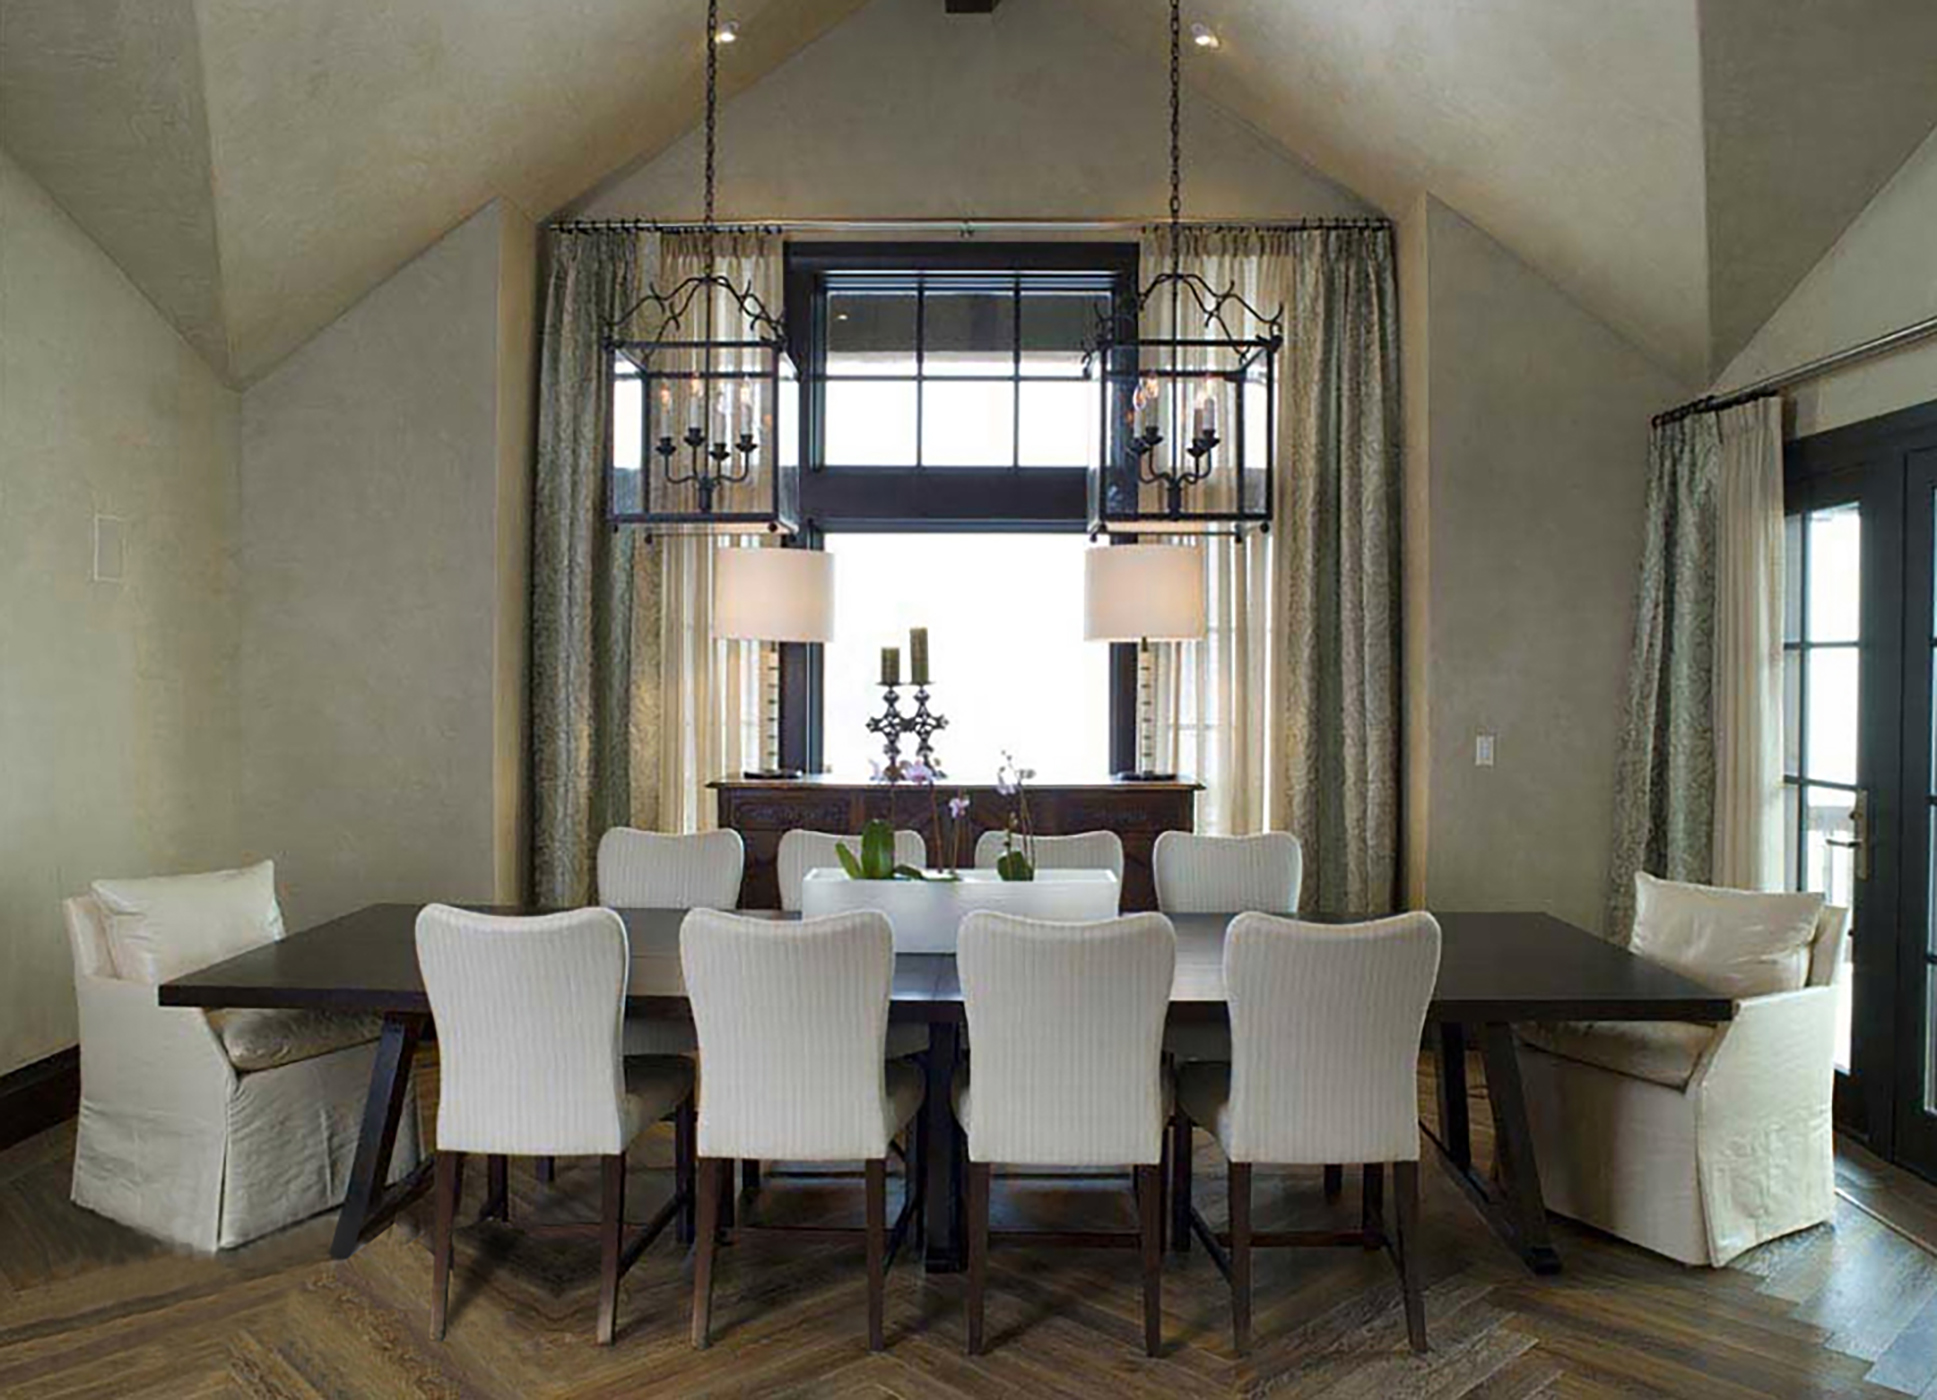 Dining Room with Savannah Side Chairs by Maxine Snider Inc.